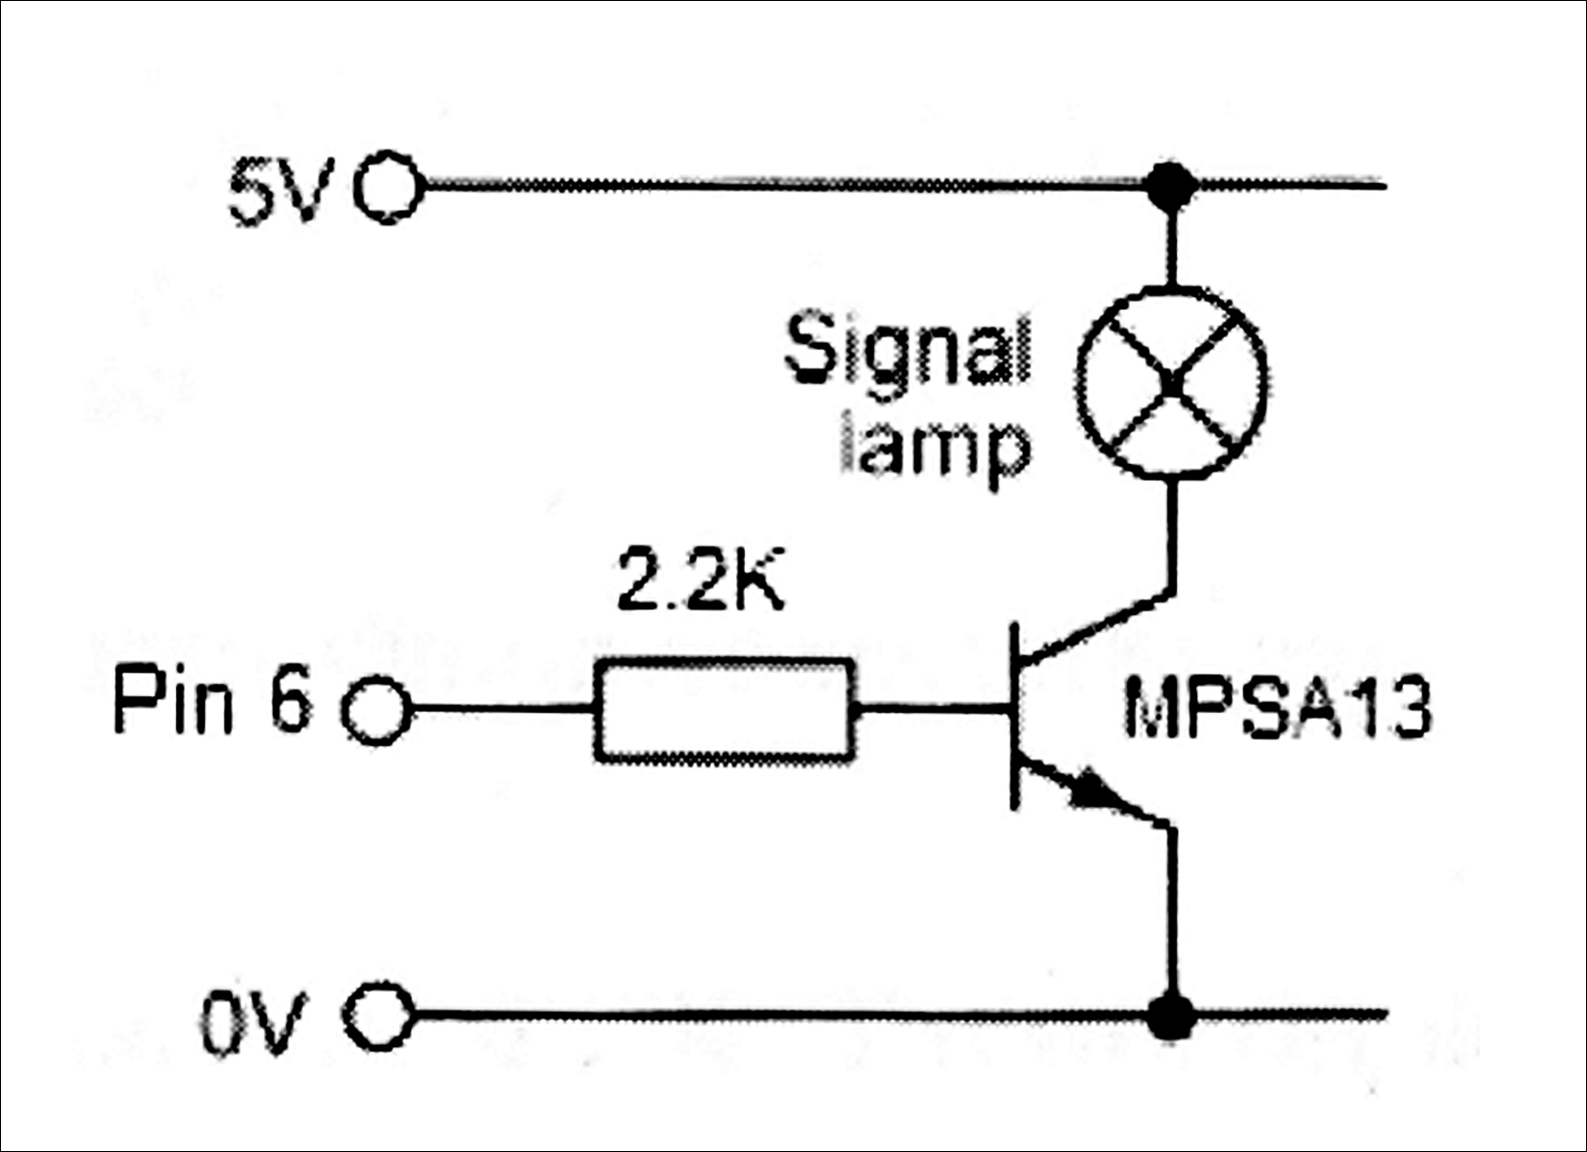 Electronics Cchoy 06 All About Motors Interface Micro To Transistors Circuit Darlington Transistor Reproduce The Original Except With Mpsa13